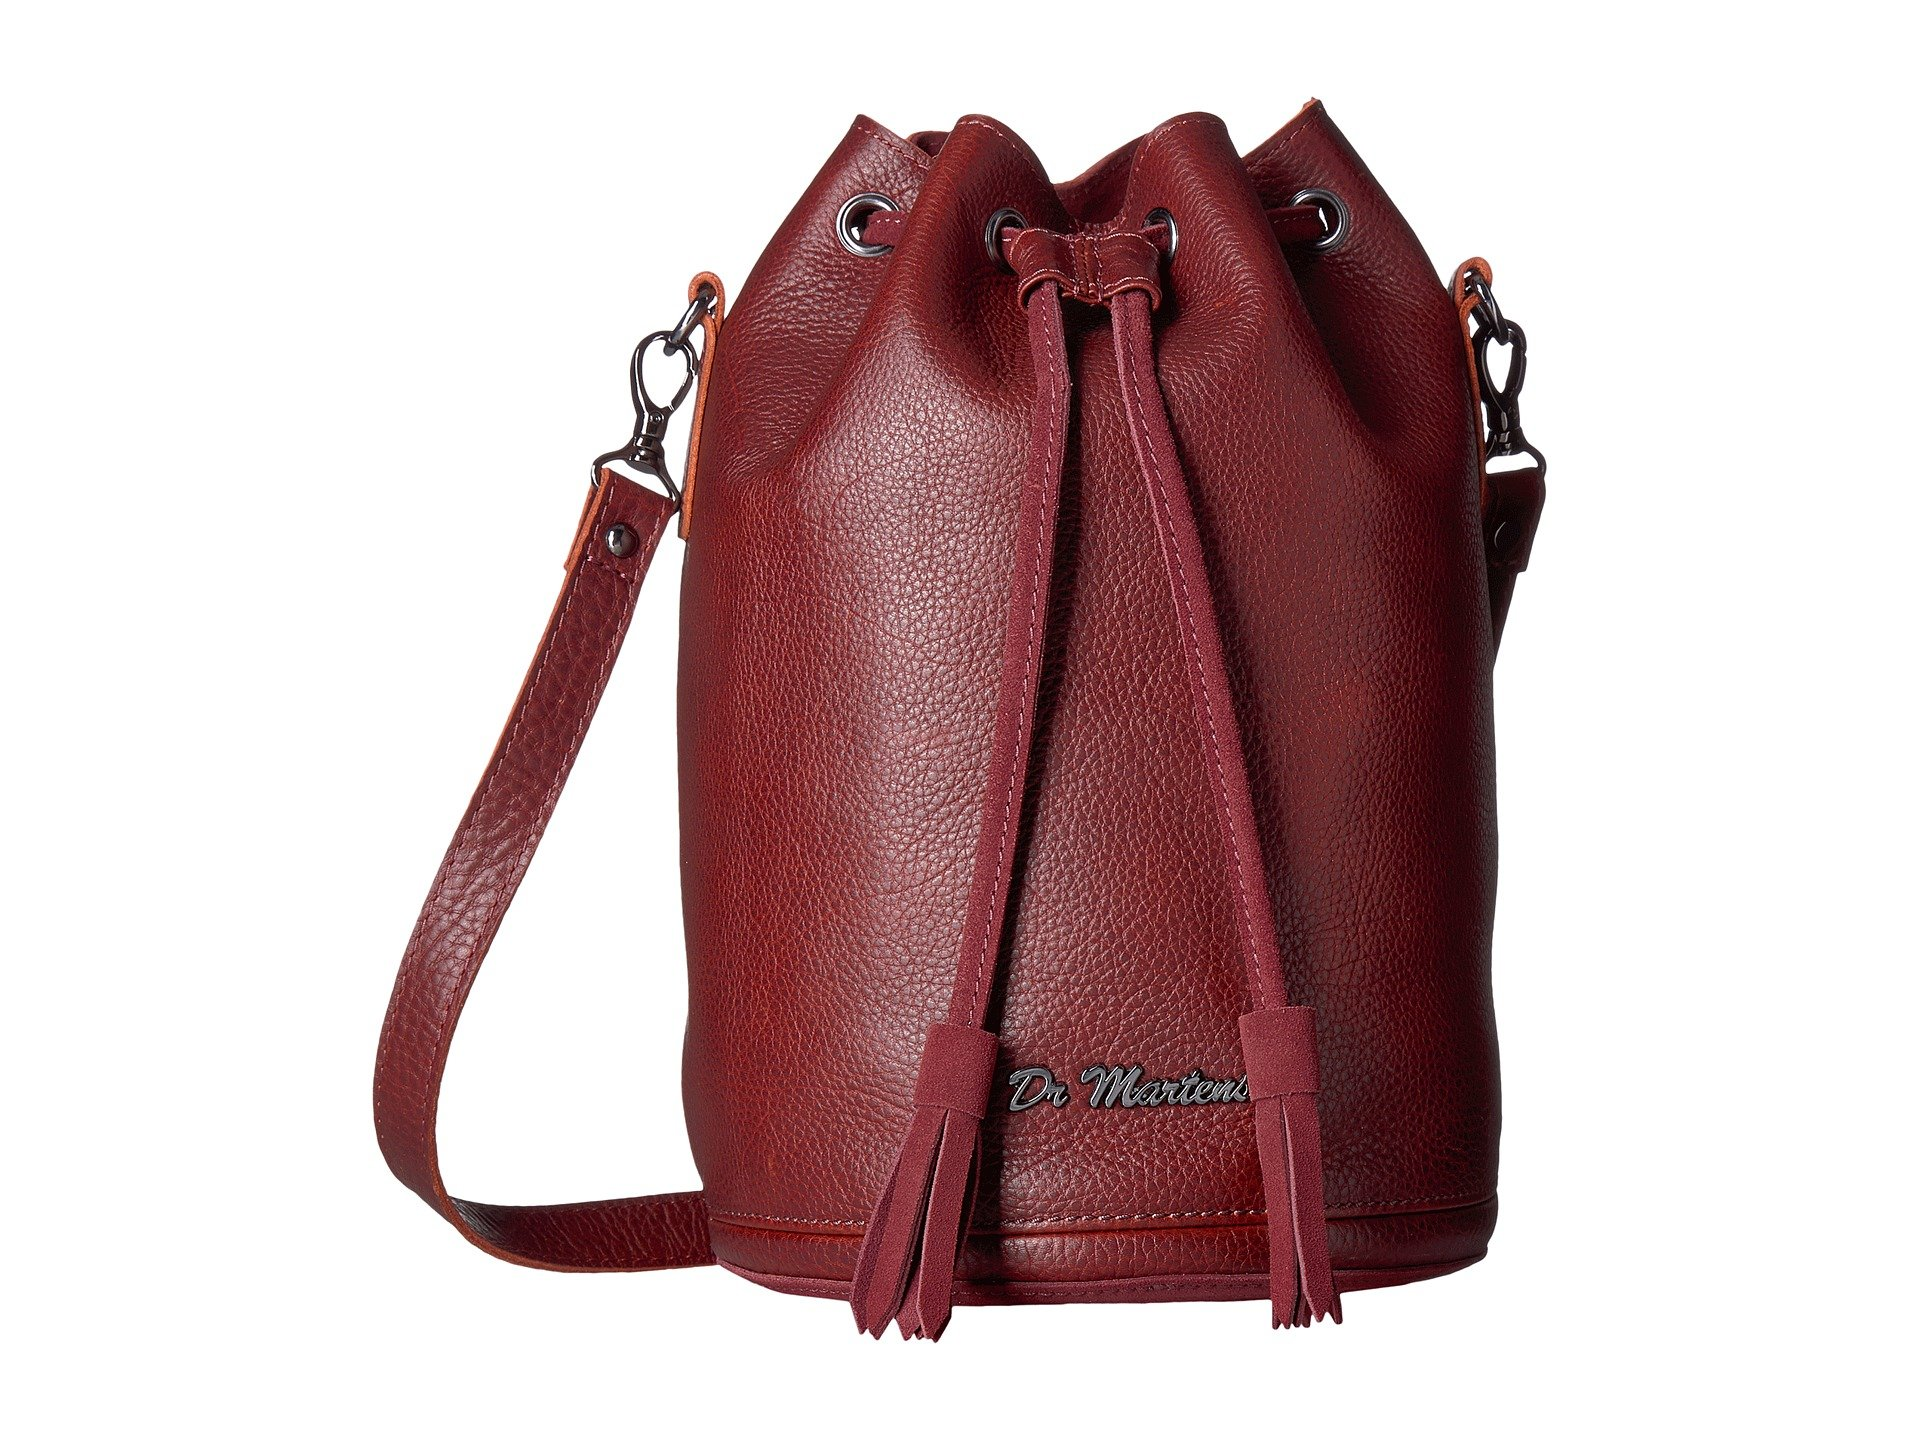 Bolso tipo Bucket Bag para Mujer Dr. Martens Medium Bucket Bag  + Dr. Martens en VeoyCompro.net